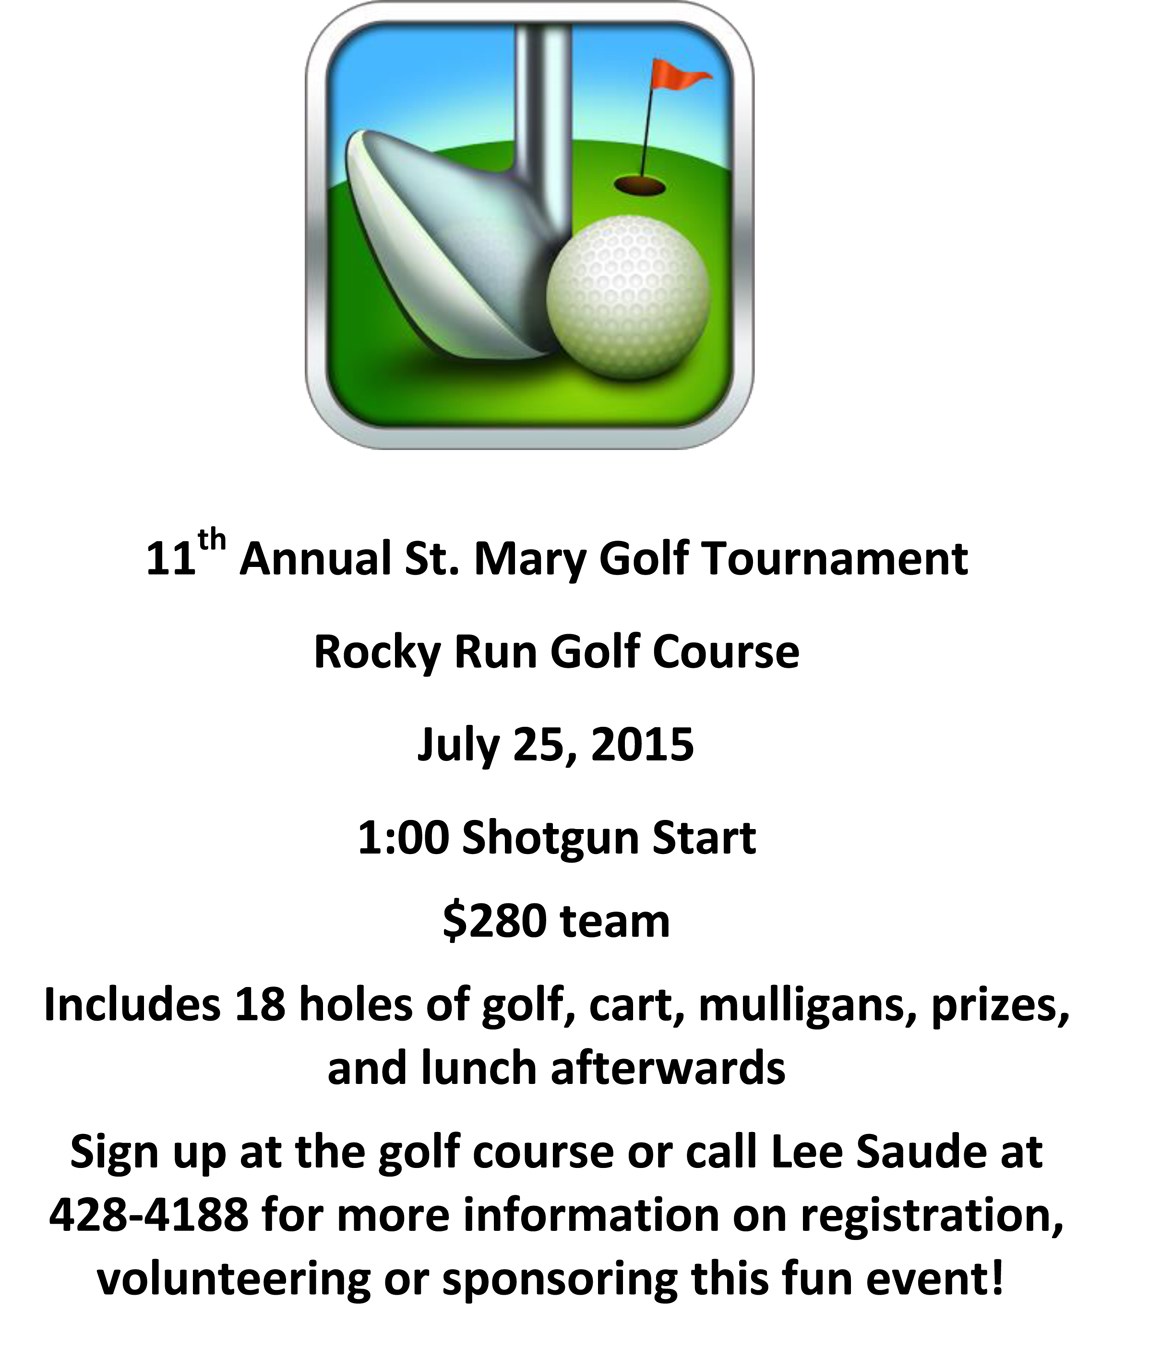 11thAnnualDRSMGolfTournament